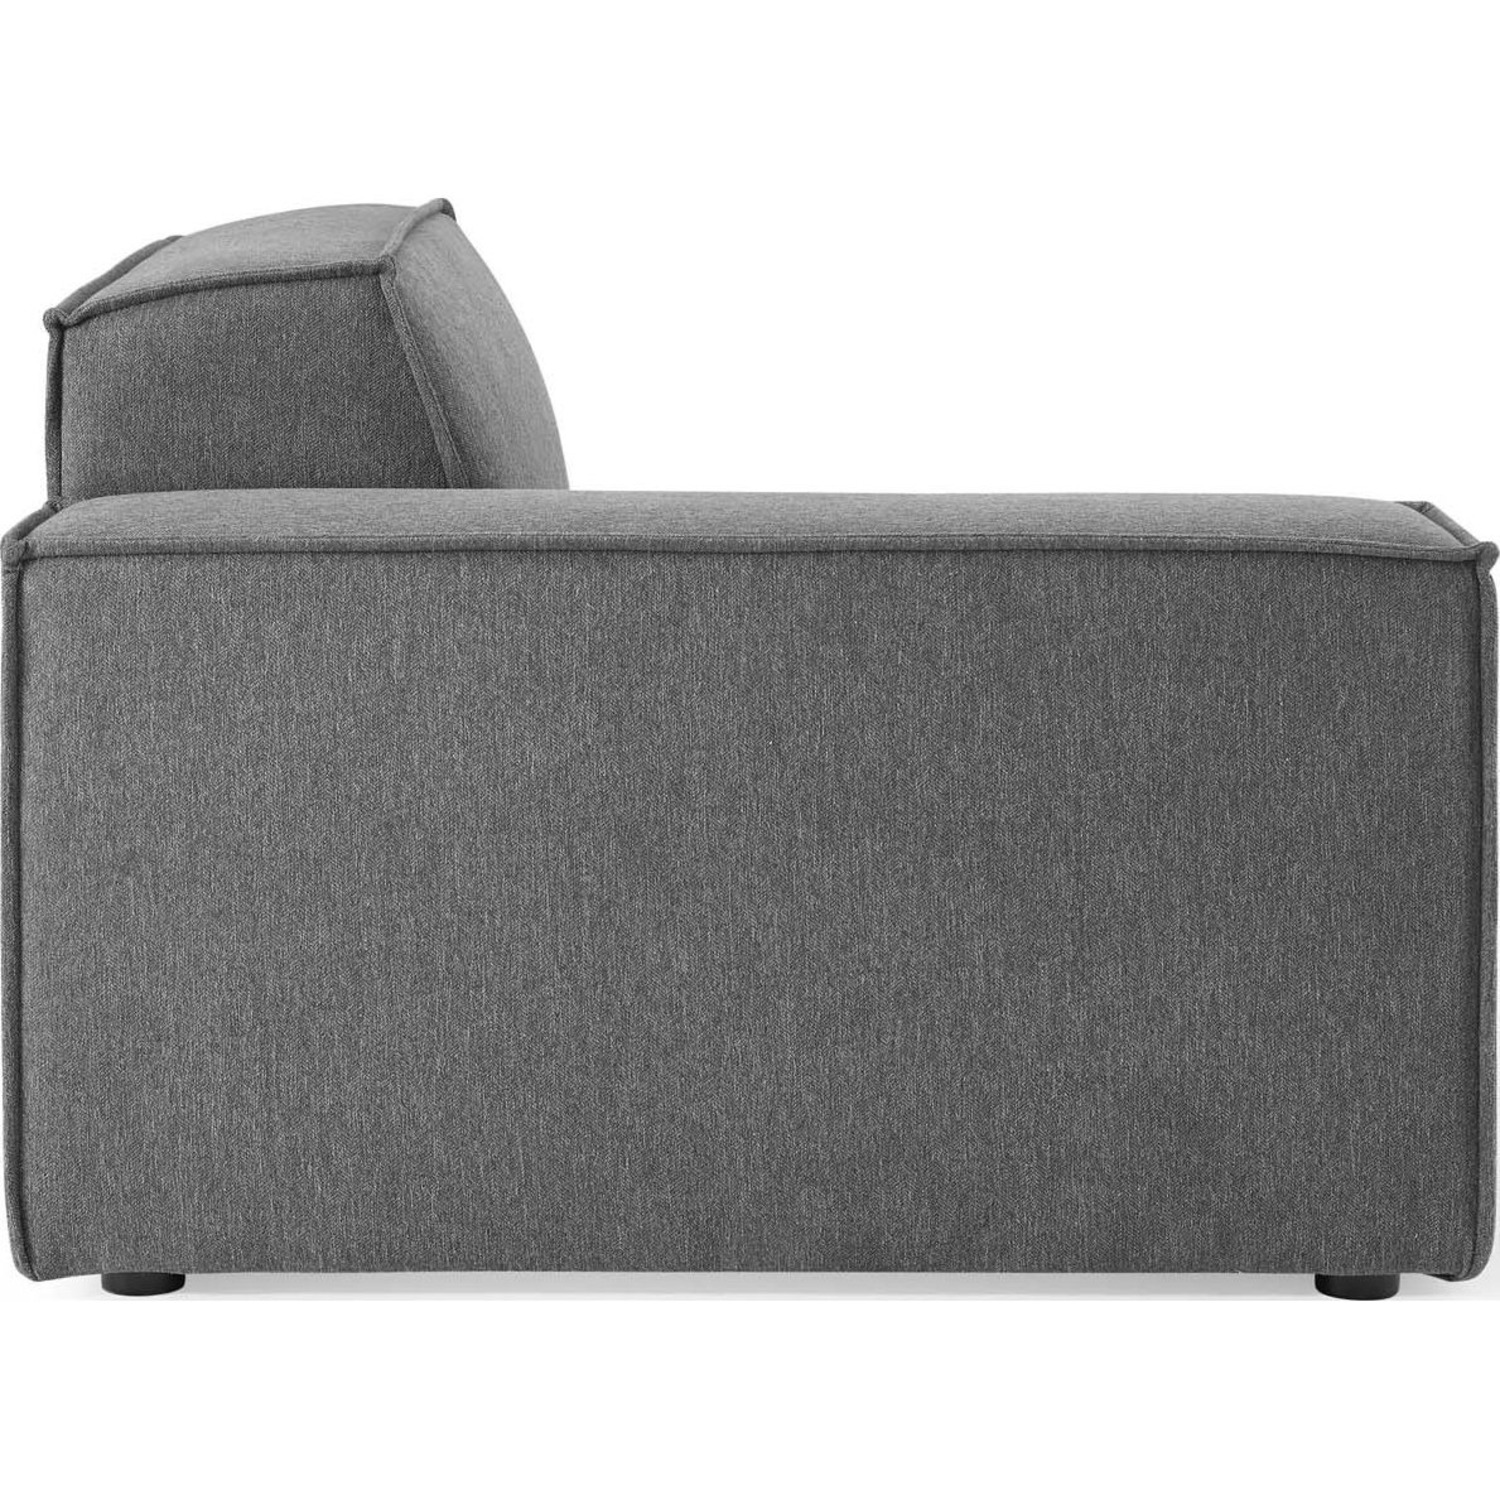 5-Piece Sectional Sofa In Charcoal Fabric - image-5